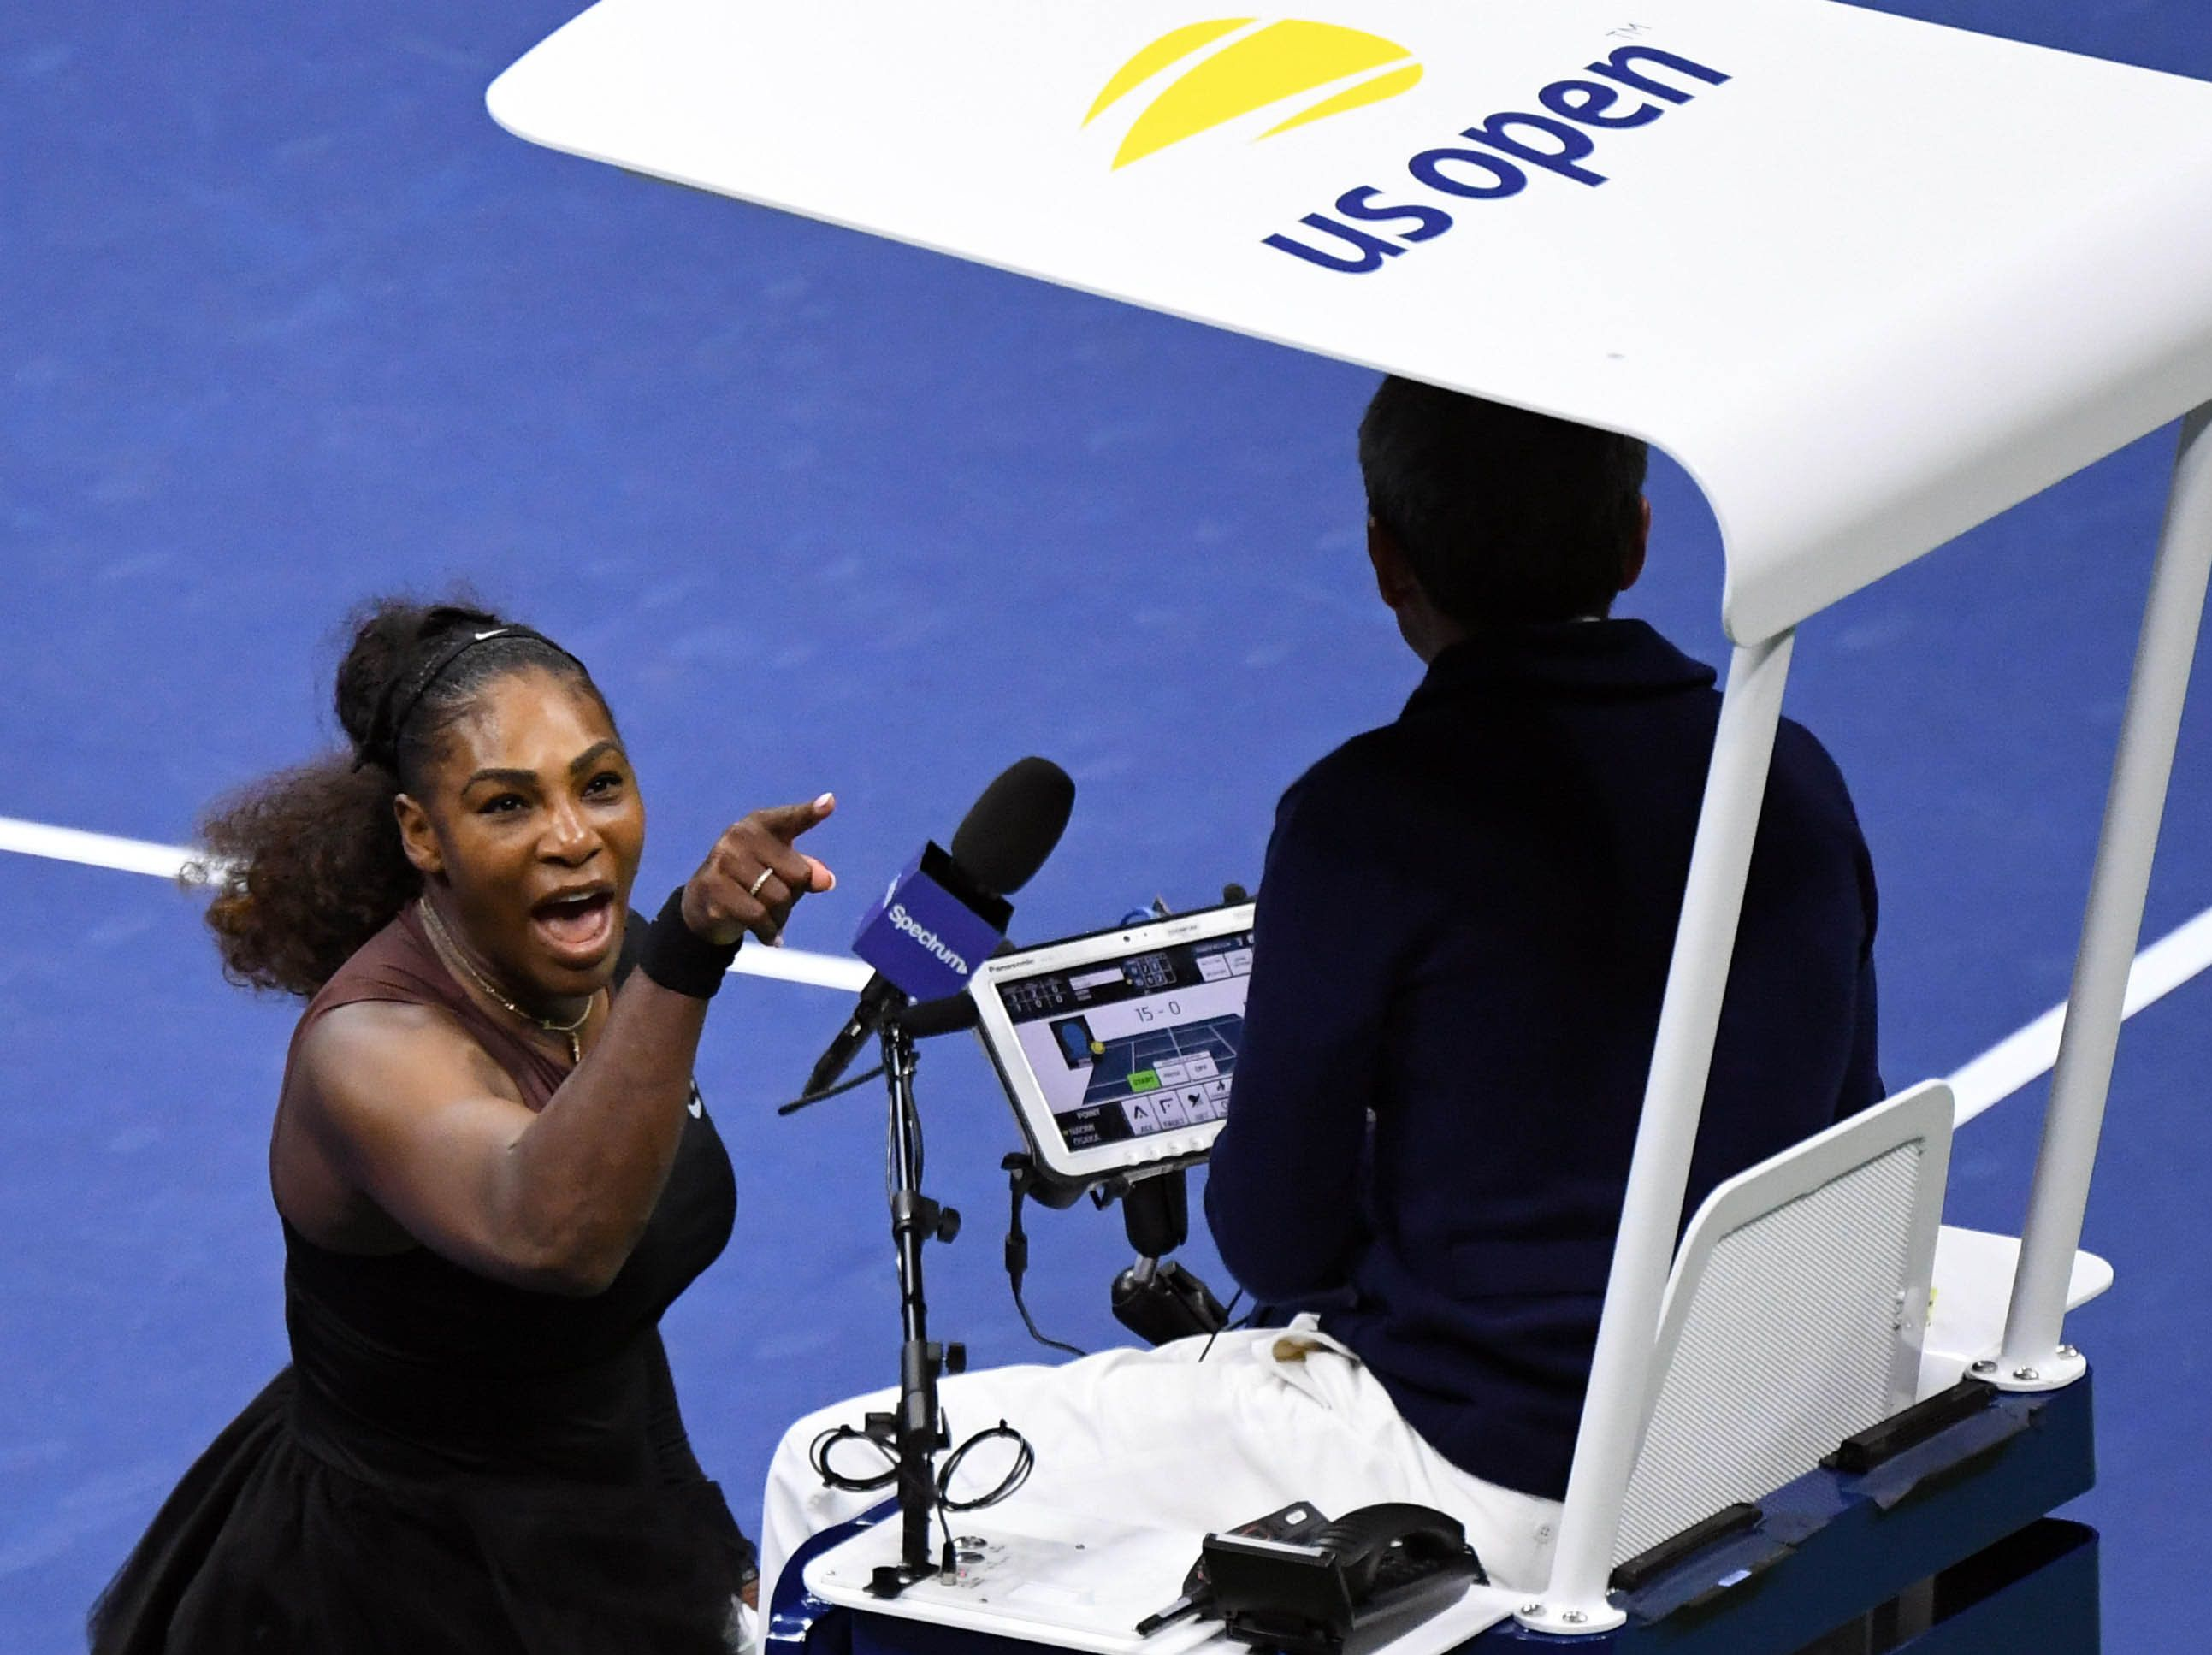 Sep 8, 2018; New York, NY, USA; Serena Williams of the United States yells at chair umpire Carlos Ramos in the women's final against Naomi Osaka of Japan on day thirteen of the 2018 U.S. Open tennis tournament at USTA Billie Jean King National Tennis Center. Mandatory Credit: Danielle Parhizkaran-USA TODAY SPORTS